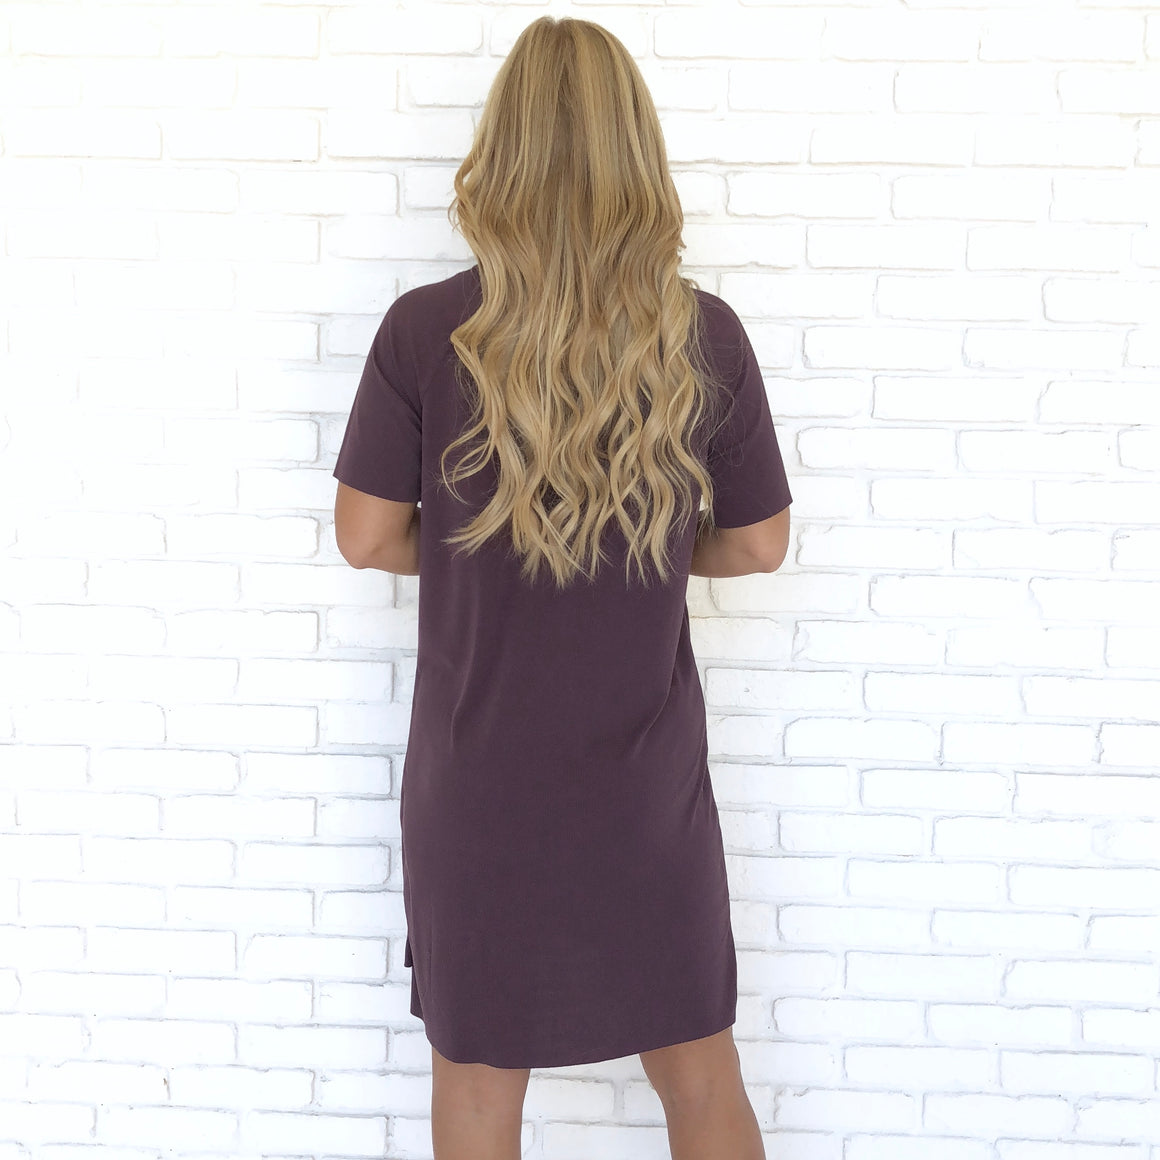 Effortless Run Around Dress in Plum